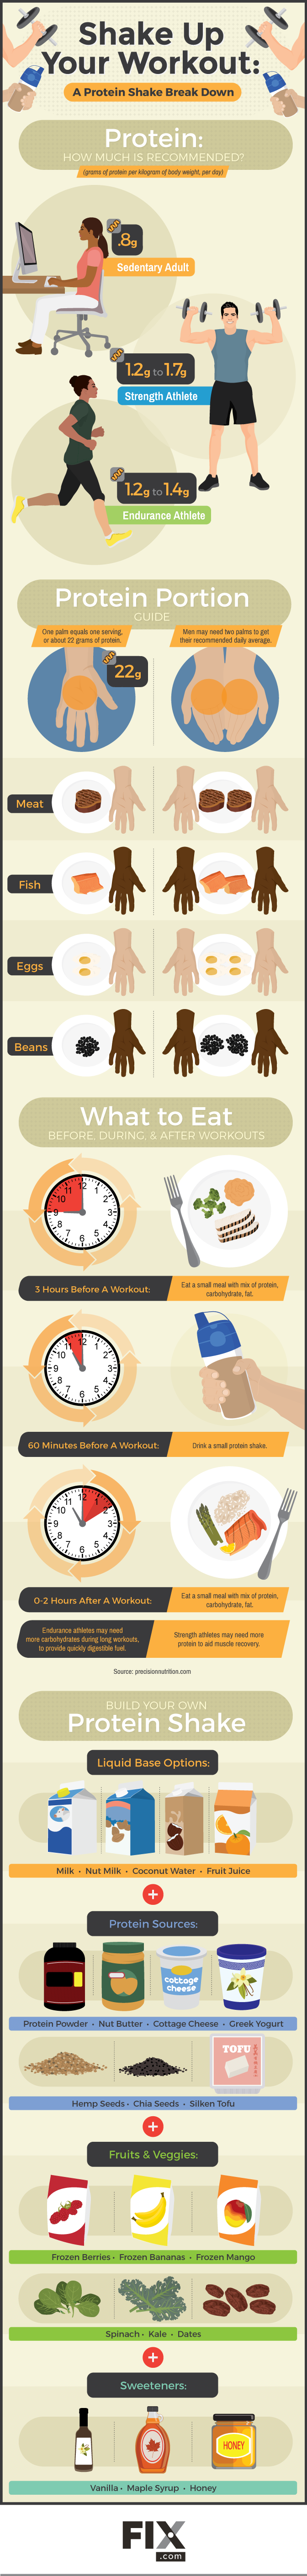 A Guide To Maintaining Your Protein Intake While Working Out - Infographic